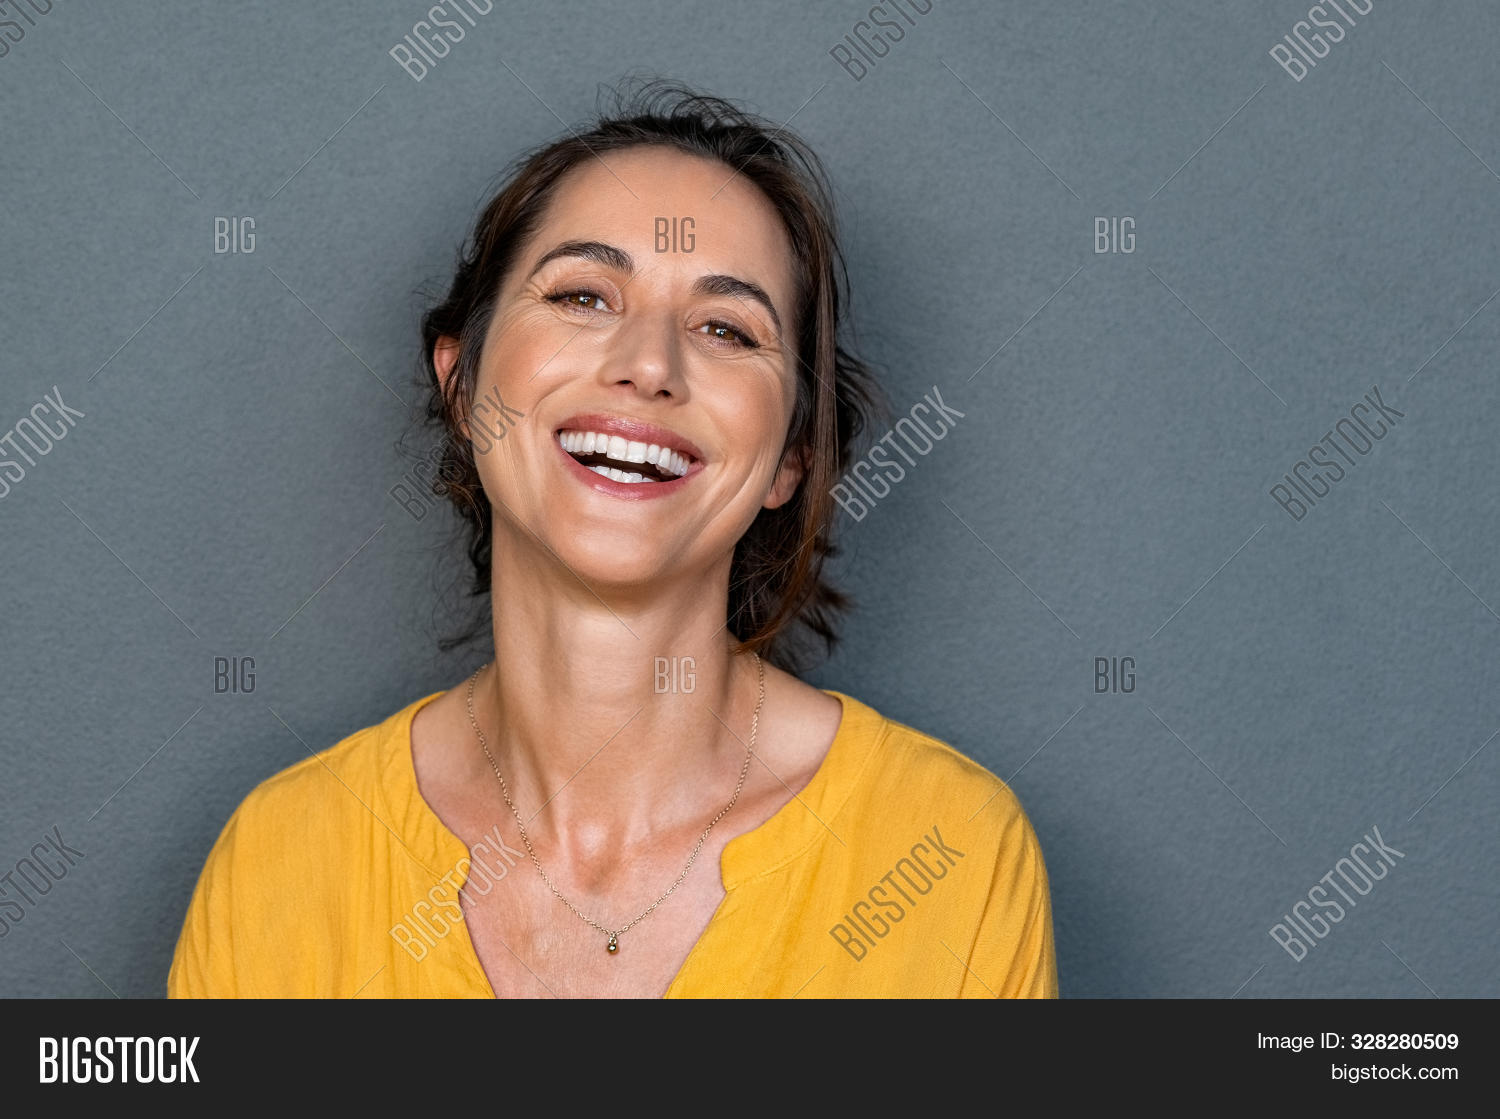 attractive,background,beautiful,beauty,business,carefree,casual,cheerful,close up,confident,copy space,dental,energy,entrepreneur,expression,face,fresh,fun,gray,gray background,grey,grey wall,happiness,happy,healthy,healthy lifestyle,hispanic,isolated,joy,joyful,latin,laugh,laughing woman,looking,looking at camera,mature,mid adult woman,middle aged woman,people,portrait,positive,satisfaction,smile,success,successful,teeth,wall,white,woman